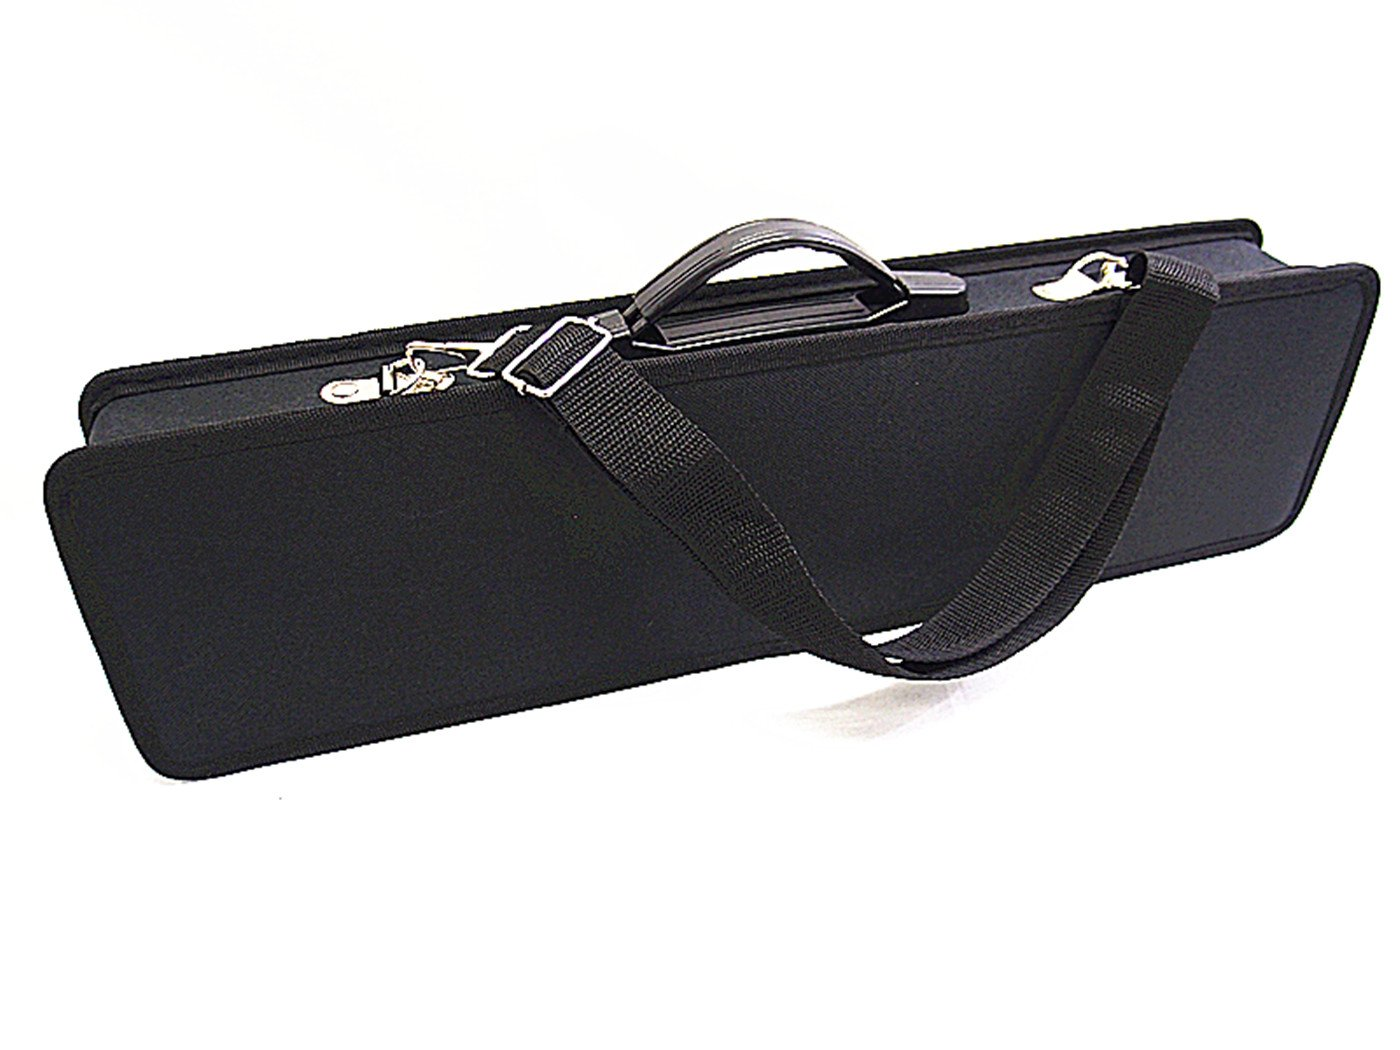 Woodnote Brand - Black Piano Style 37 Key Melodica and & Deluxe Carrying Case by Woodnote